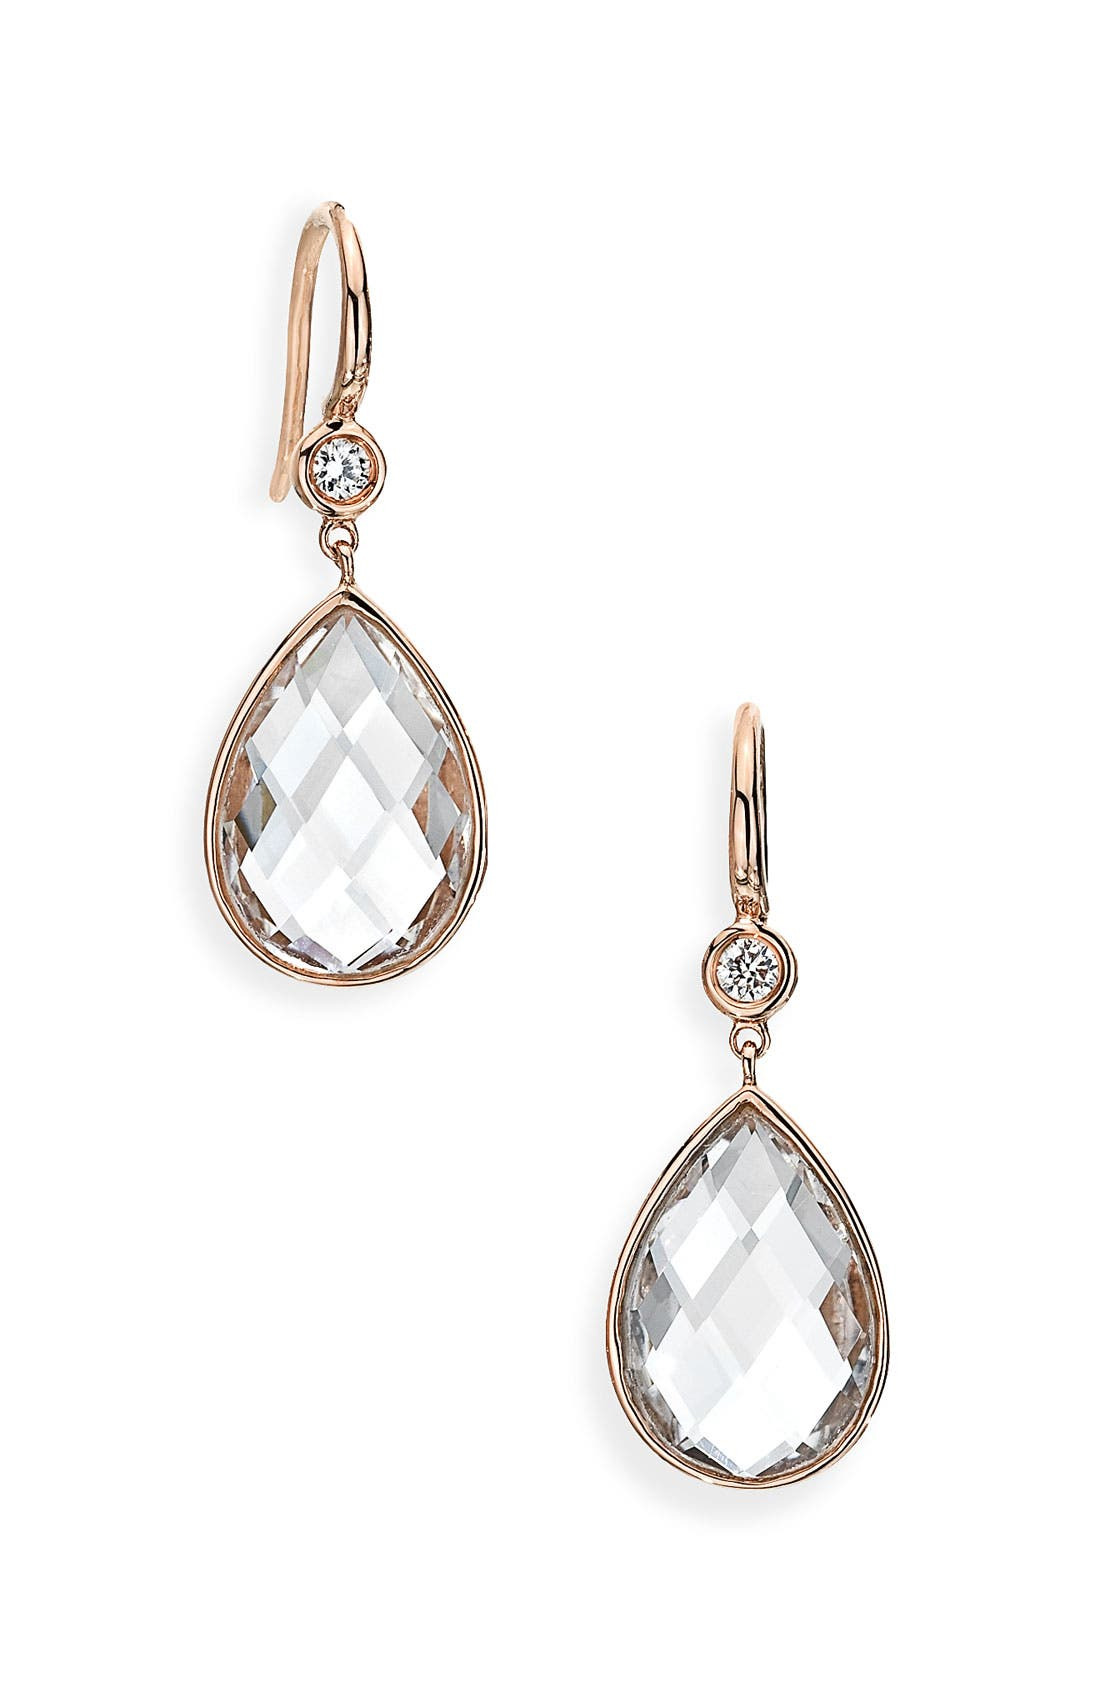 Main Image - Ivanka Trump 'Mixed Cut' Diamond & Rock Crystal Drop Earrings